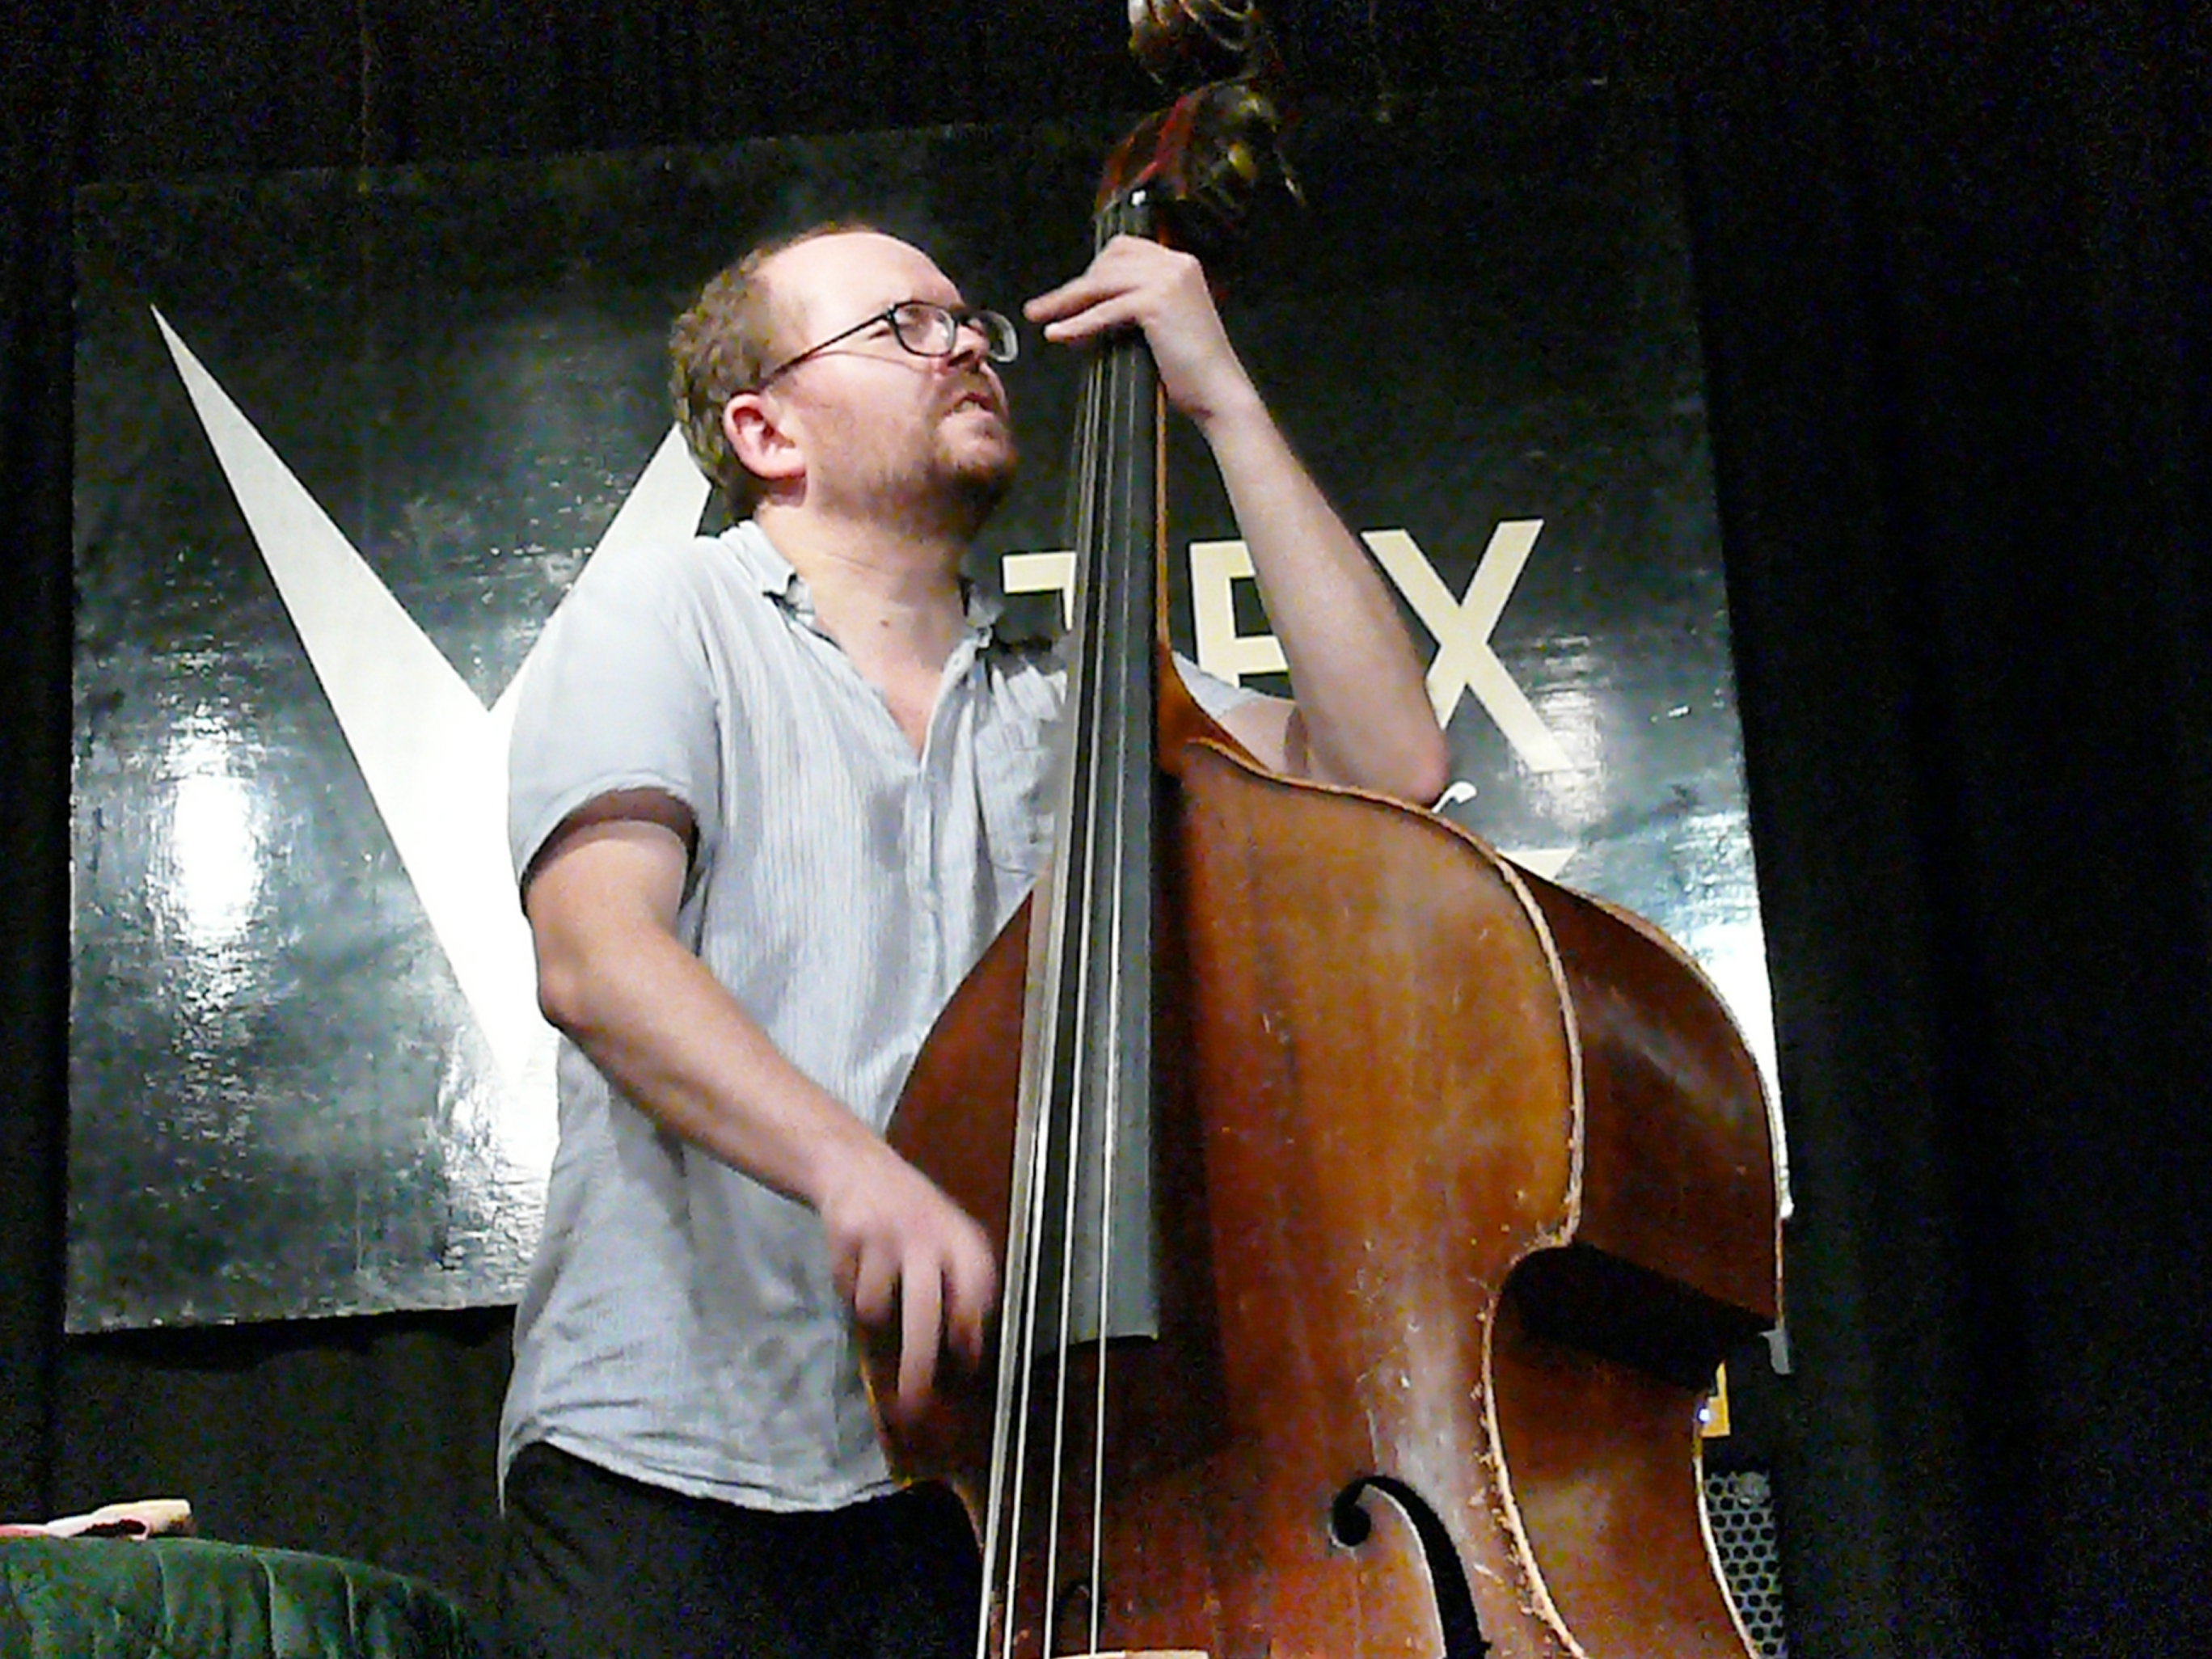 Olie brice at the vortex, london in september 2013